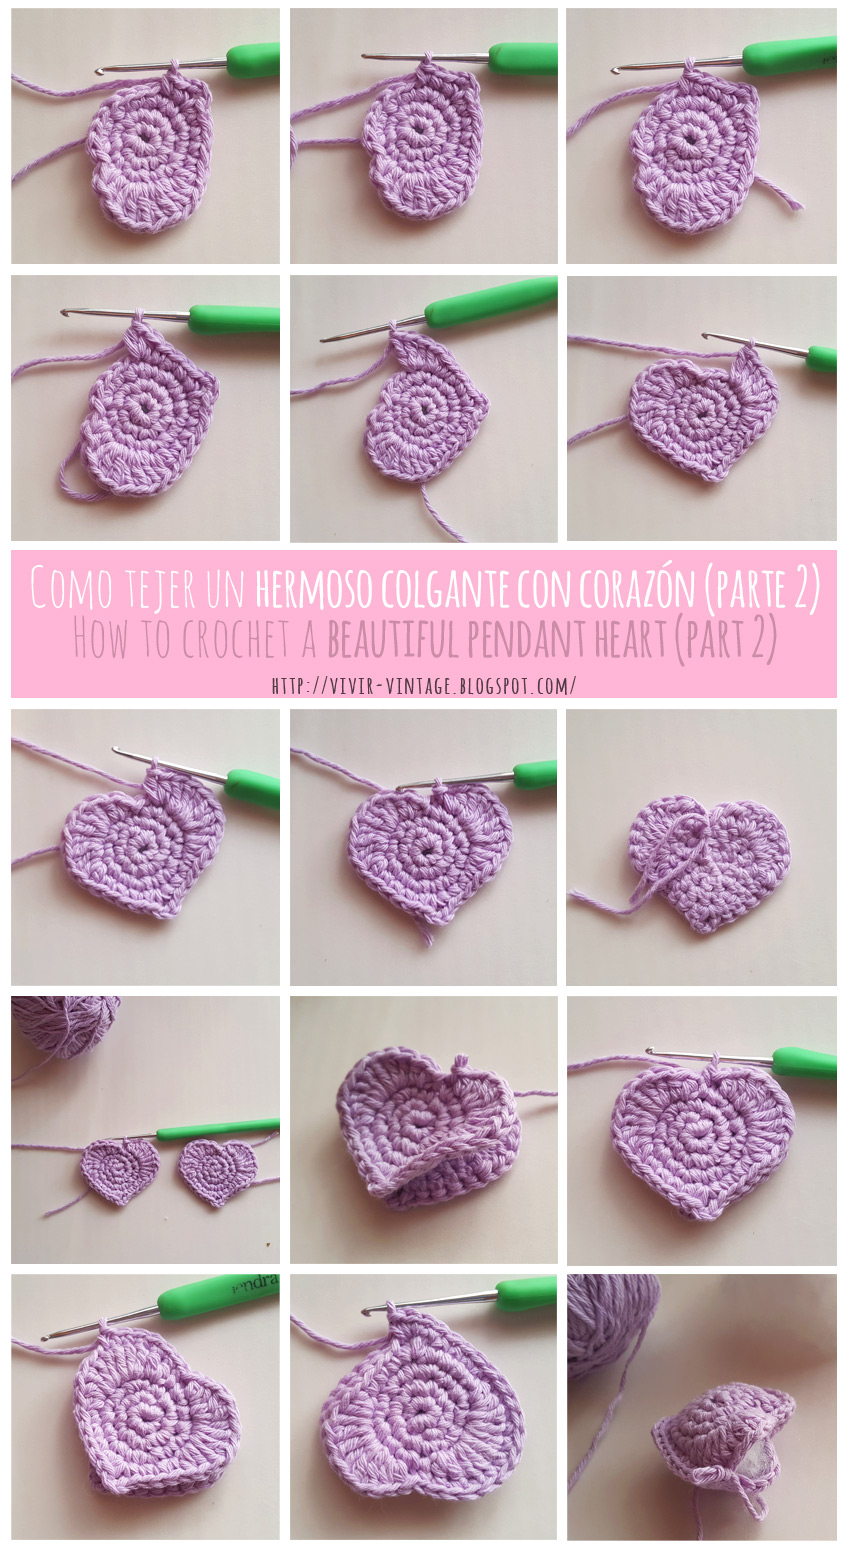 corazon crochet facil fototutorial